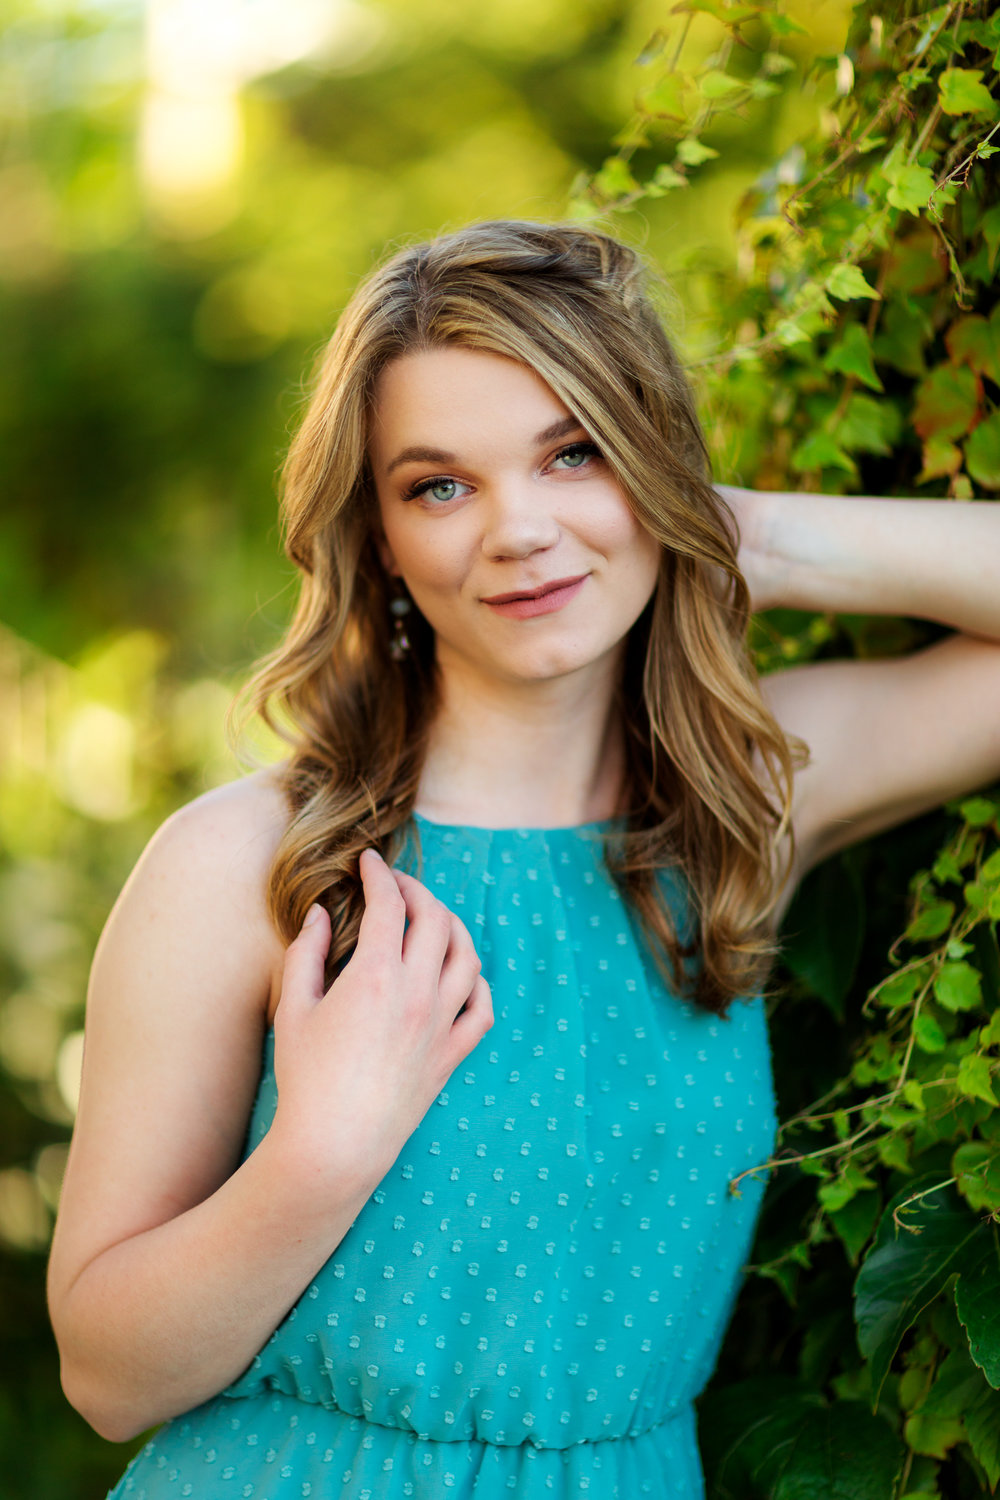 ariellanoellephotography-highschool-senior-portrait-photographer-seattle-area-bellevue-redmond-snohomish-duvall-woodinville-graduation-photos-1-9.jpg